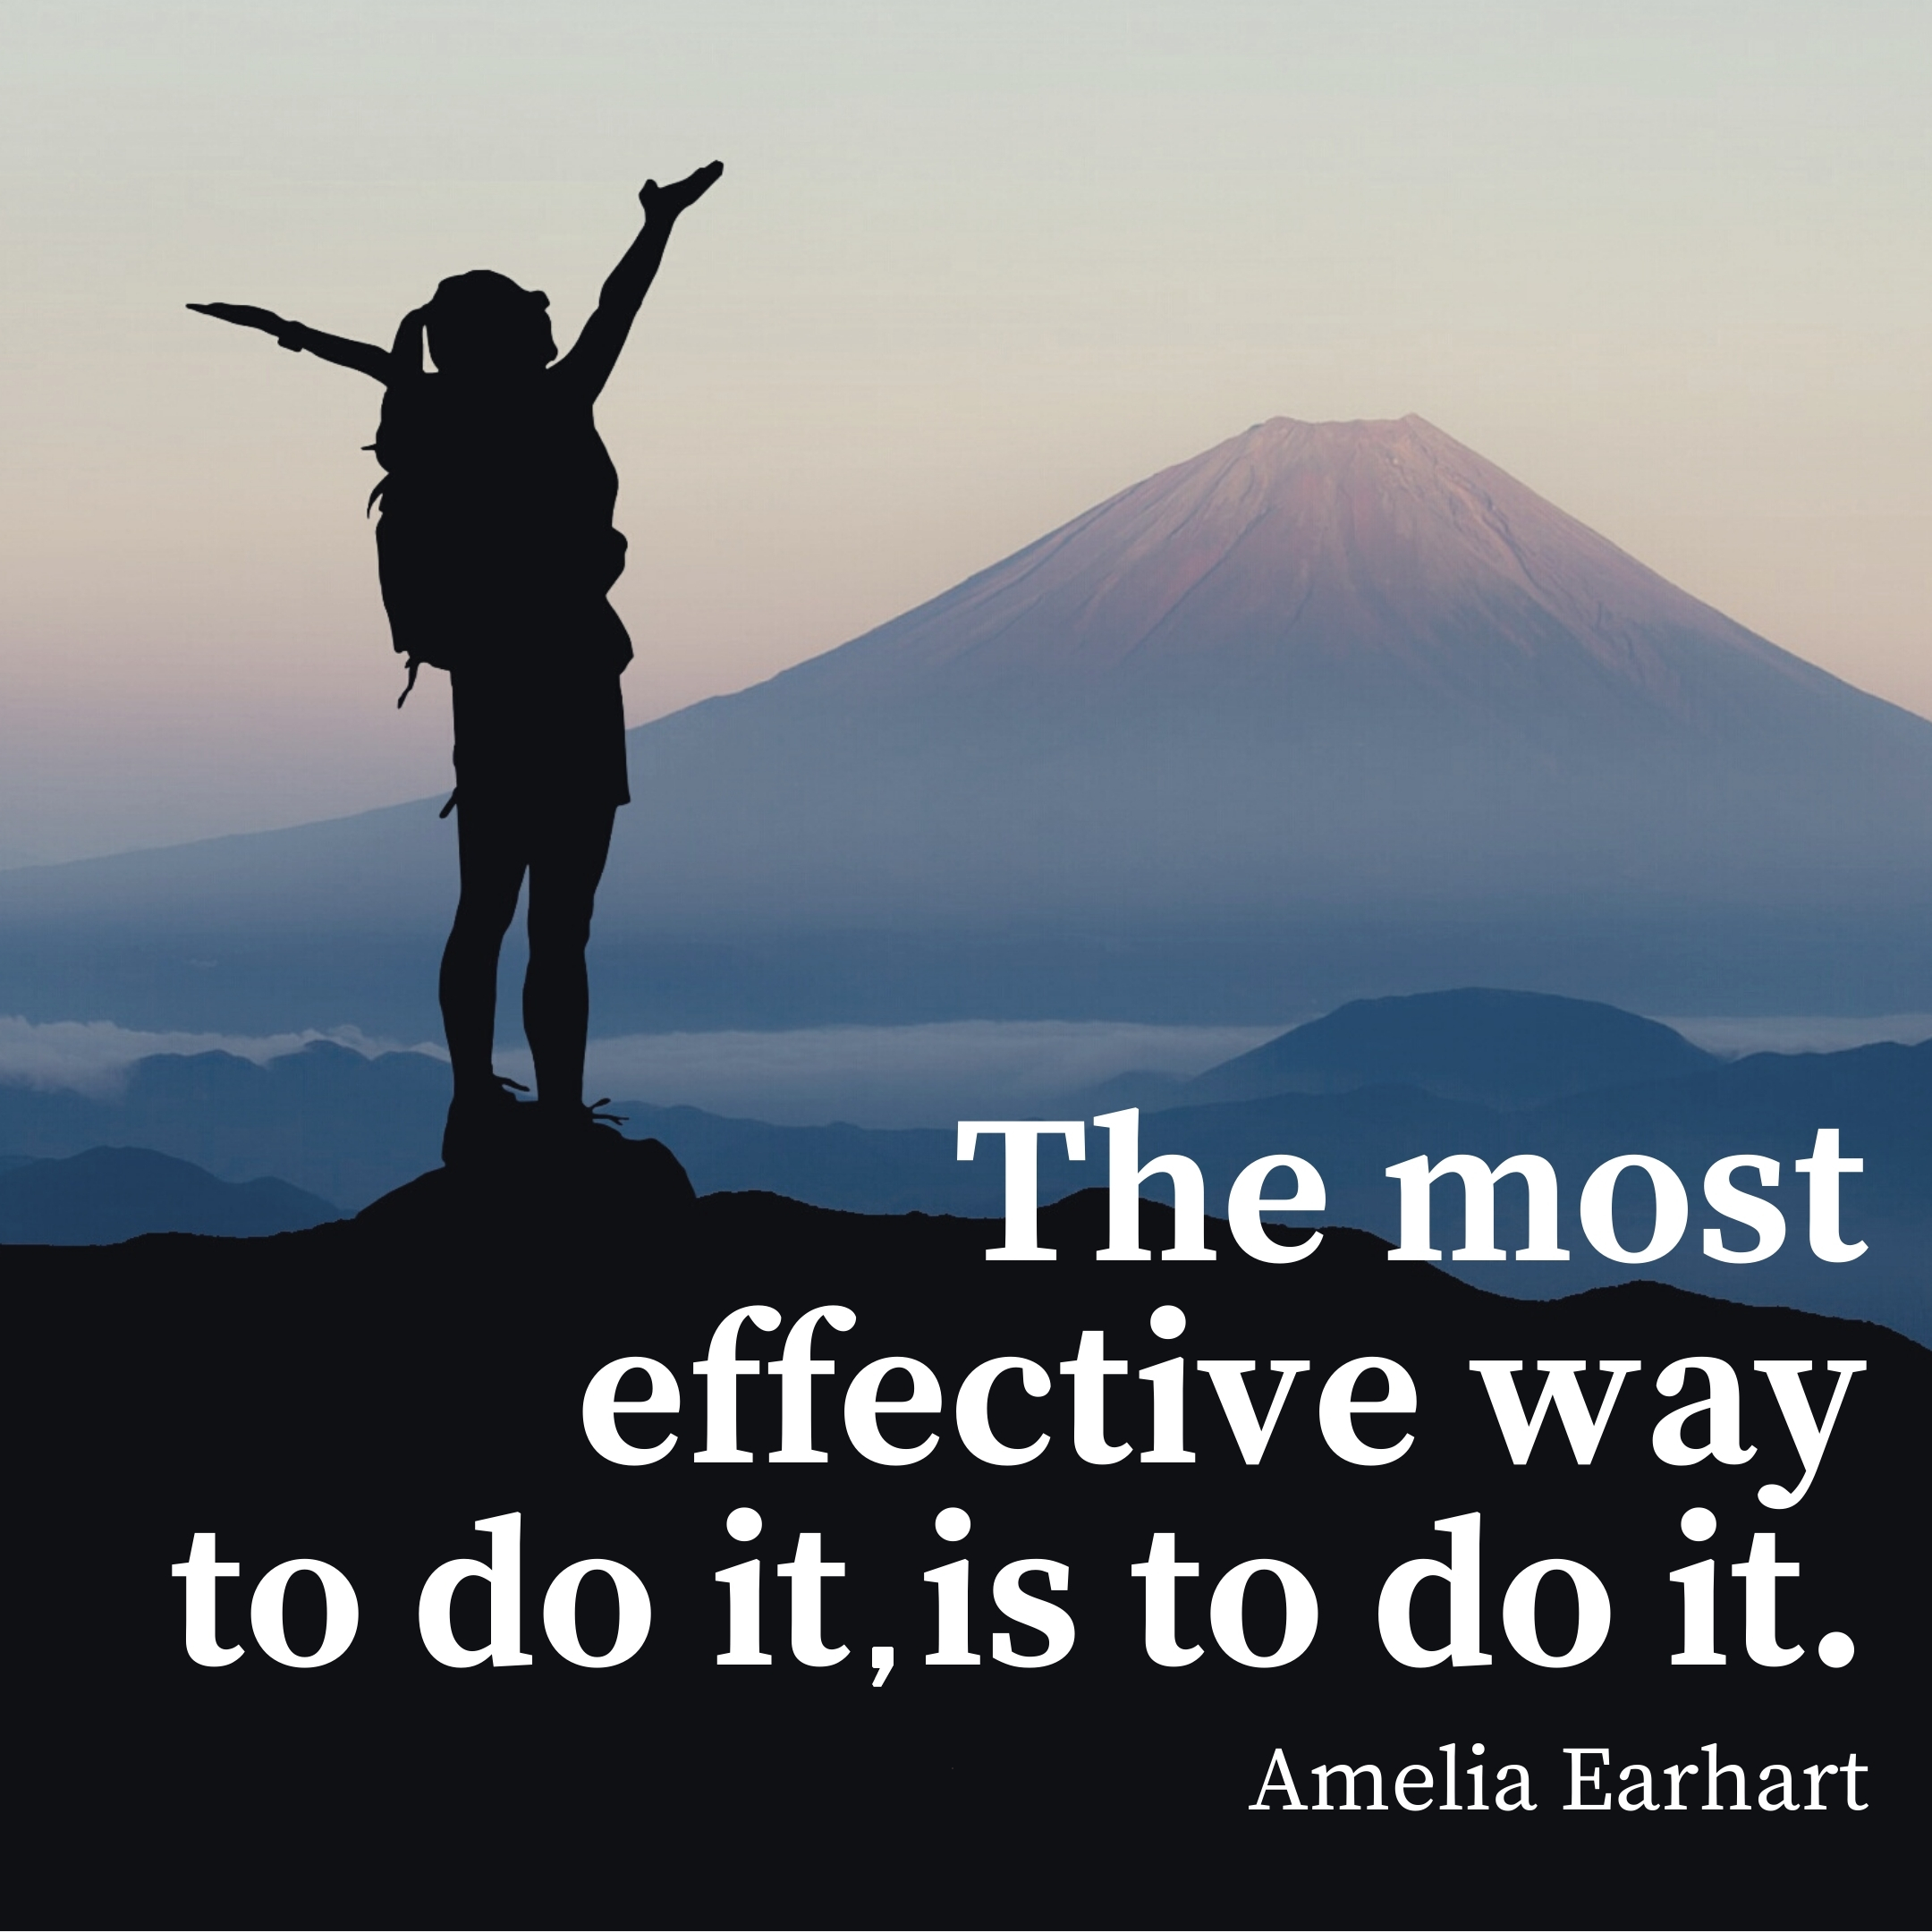 amelia earhart quote | monday motivation quotes